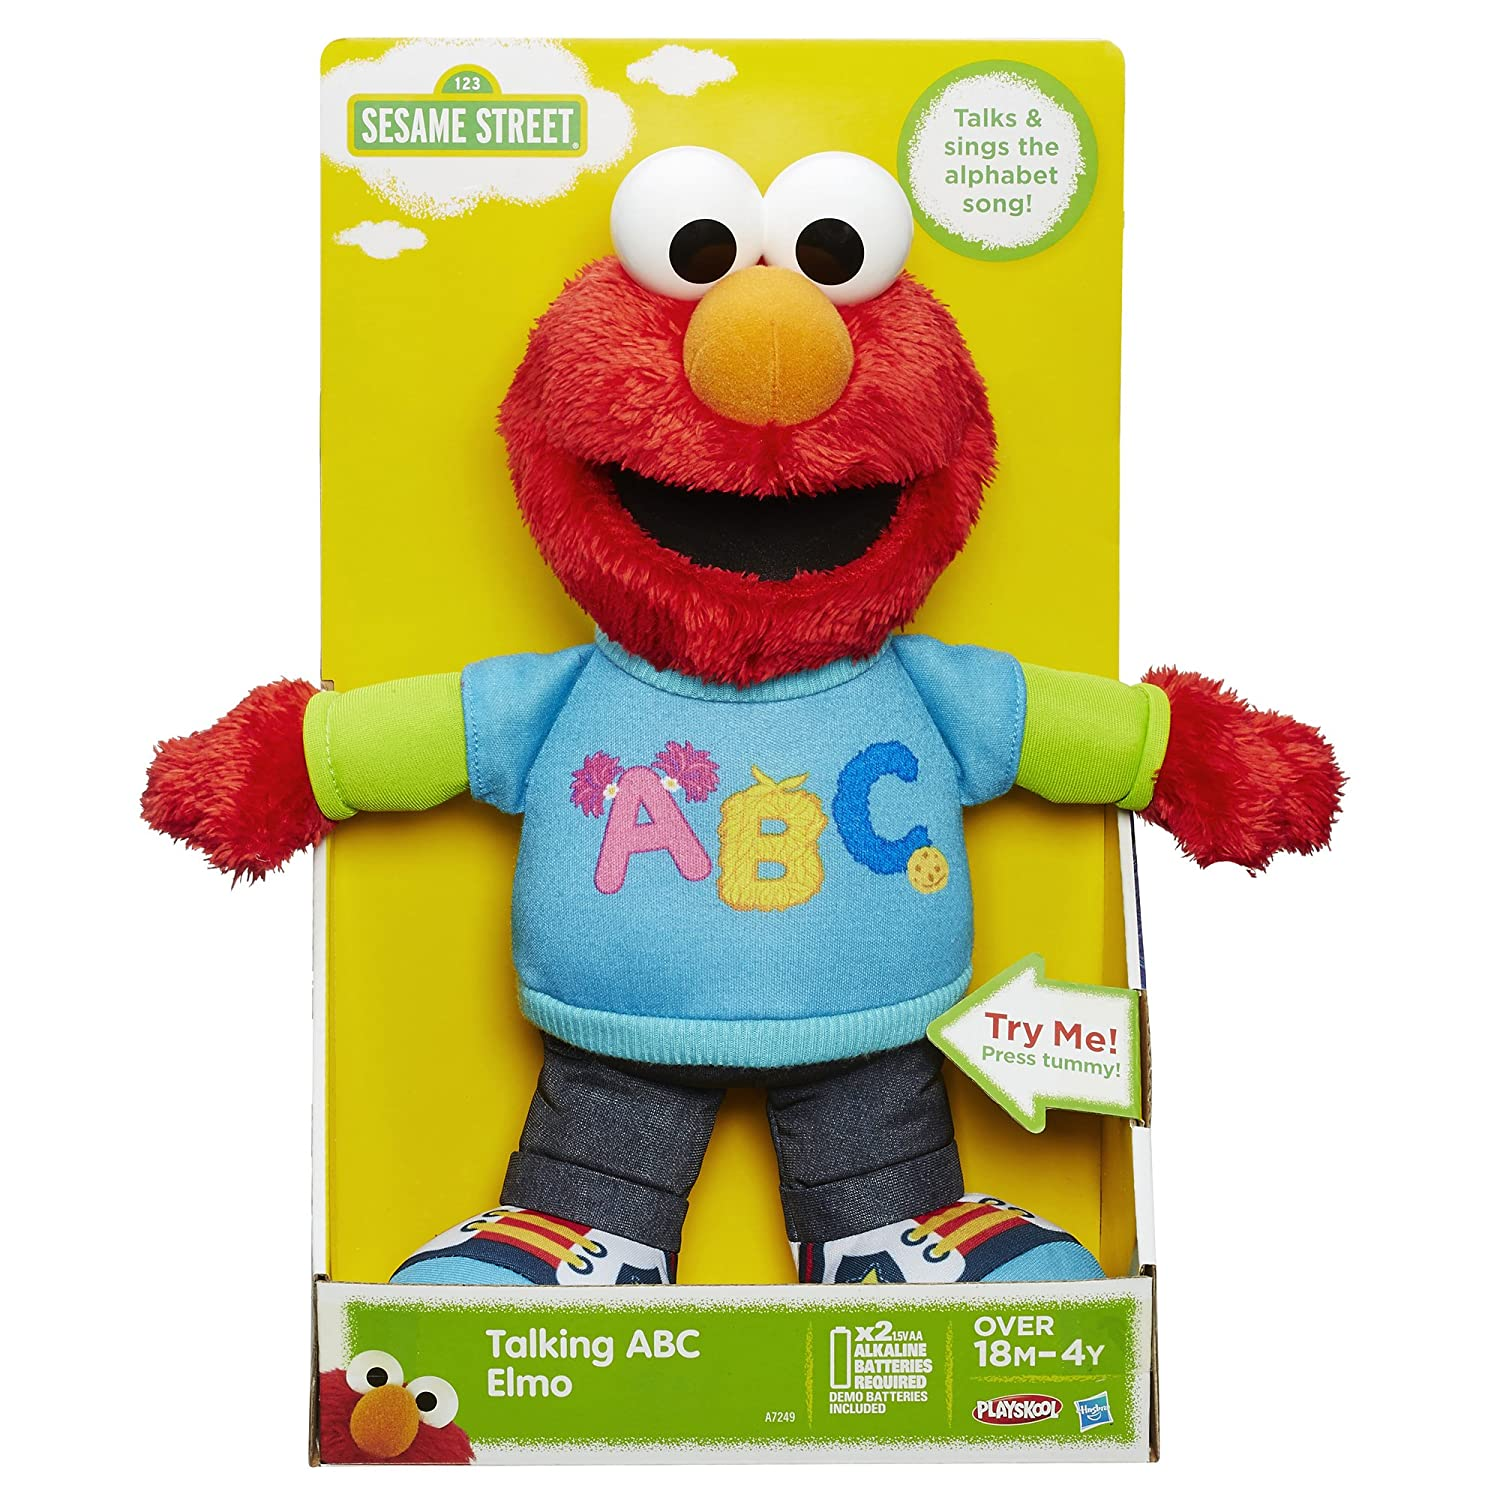 Amazon Sesame Street Talking ABC Elmo Figure Toys & Games